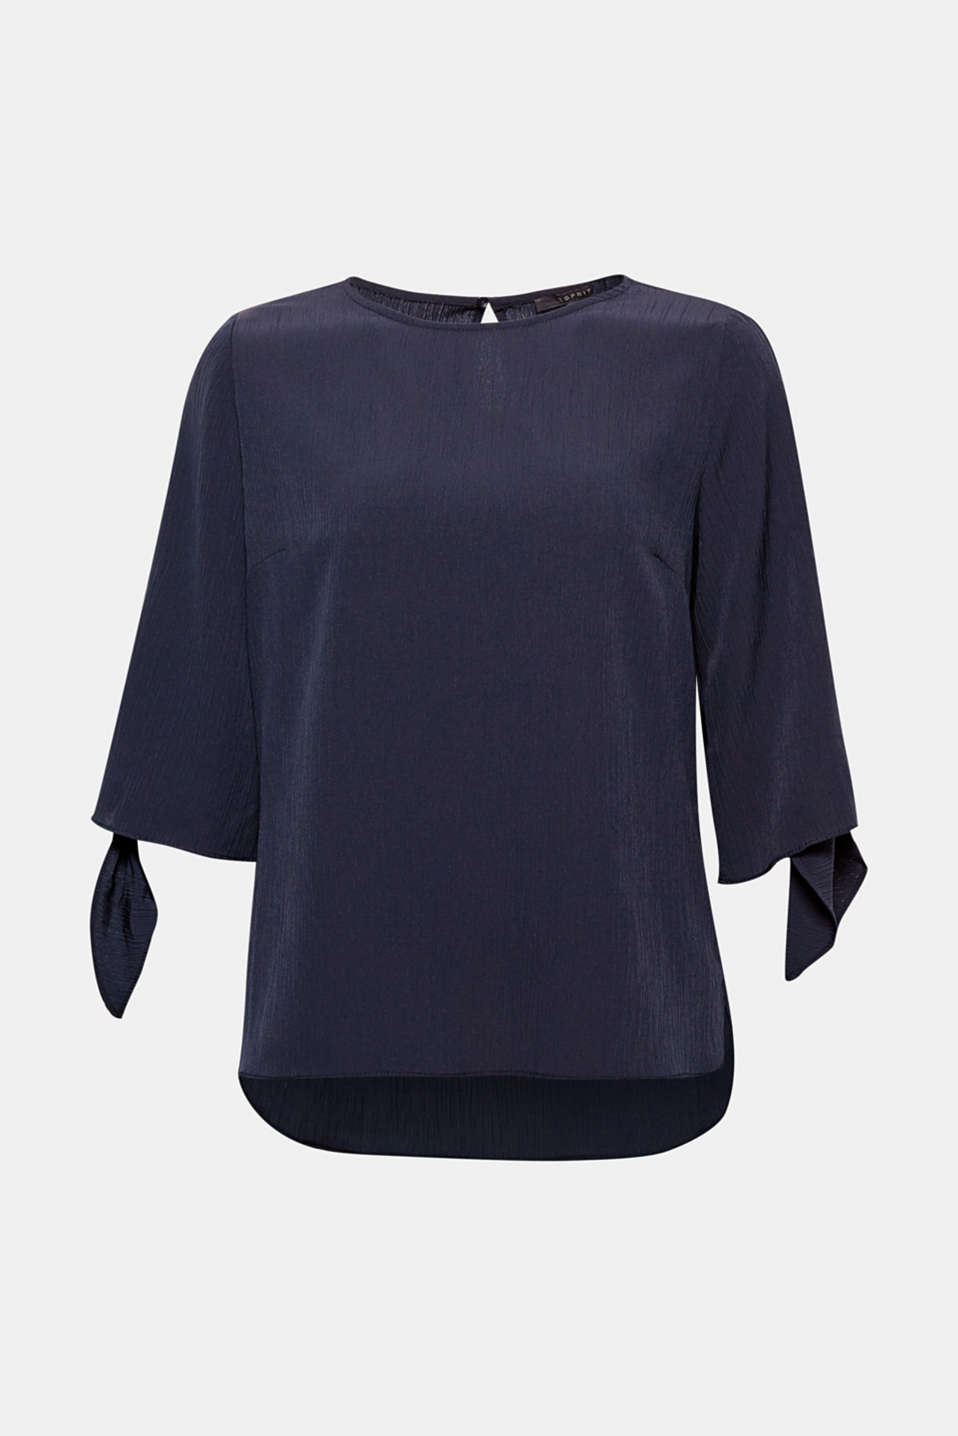 We love feminine details! The knotted sleeve ends and crinkle finish gives this blouse an exciting on-trend look